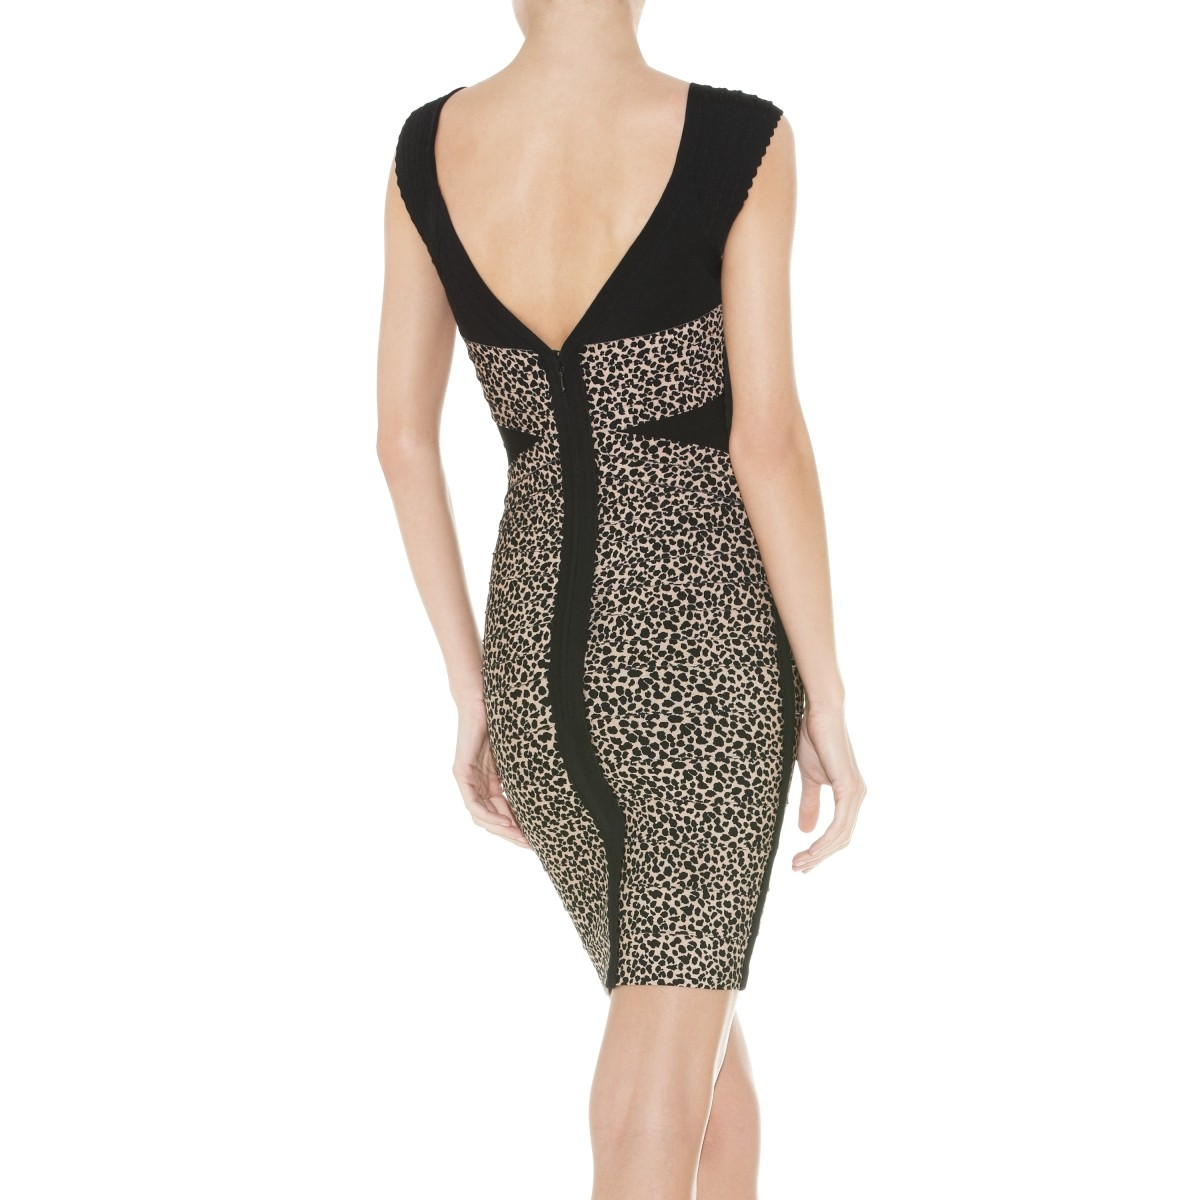 Herve Leger Bijou Bandage Dress